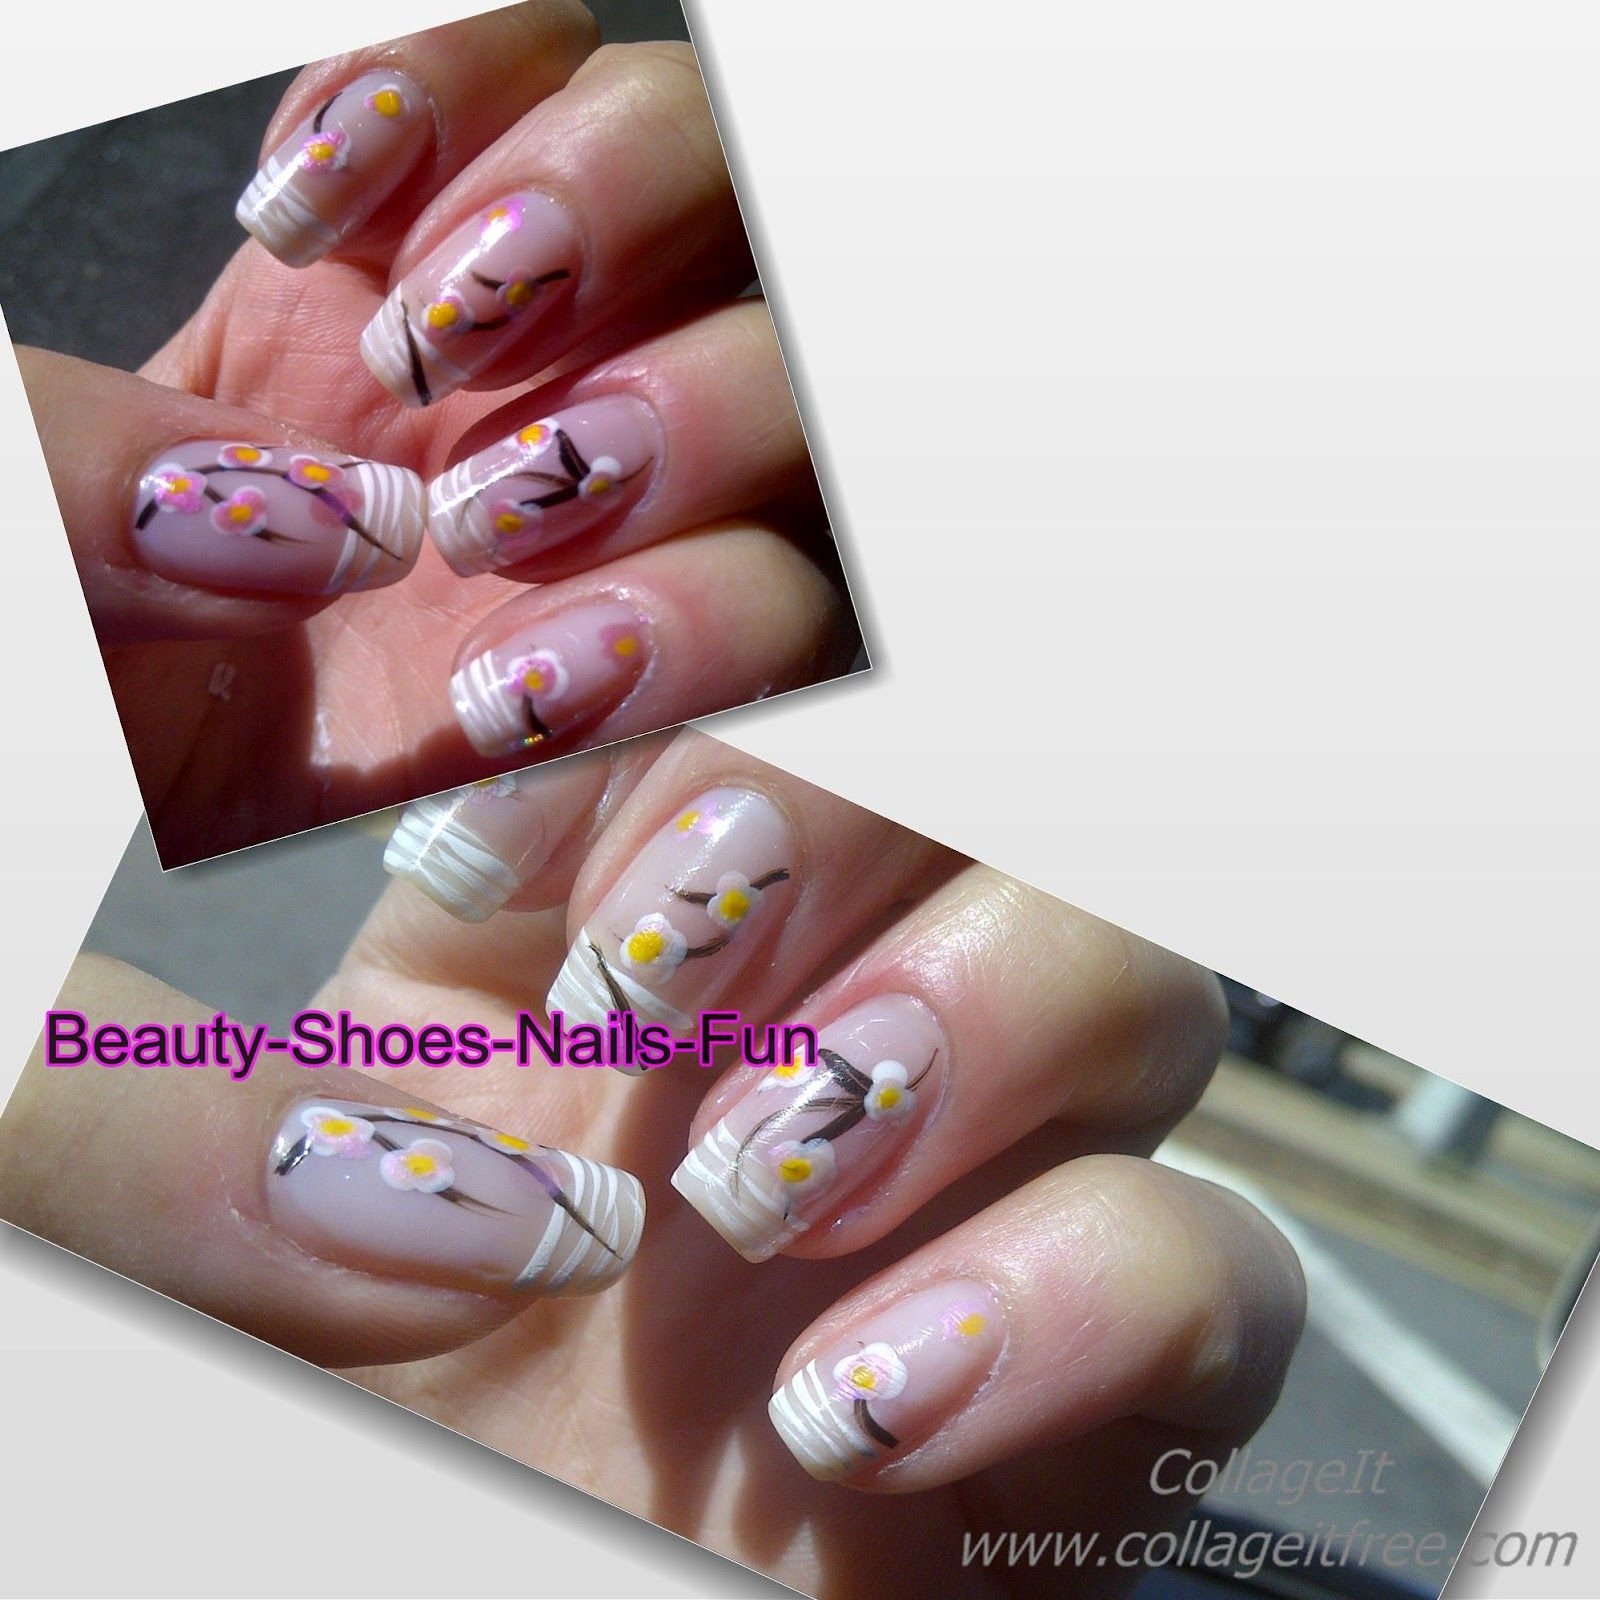 Beauty-Shoes-Nails-Fun: Nail Polish that Changes Colors (Review ...